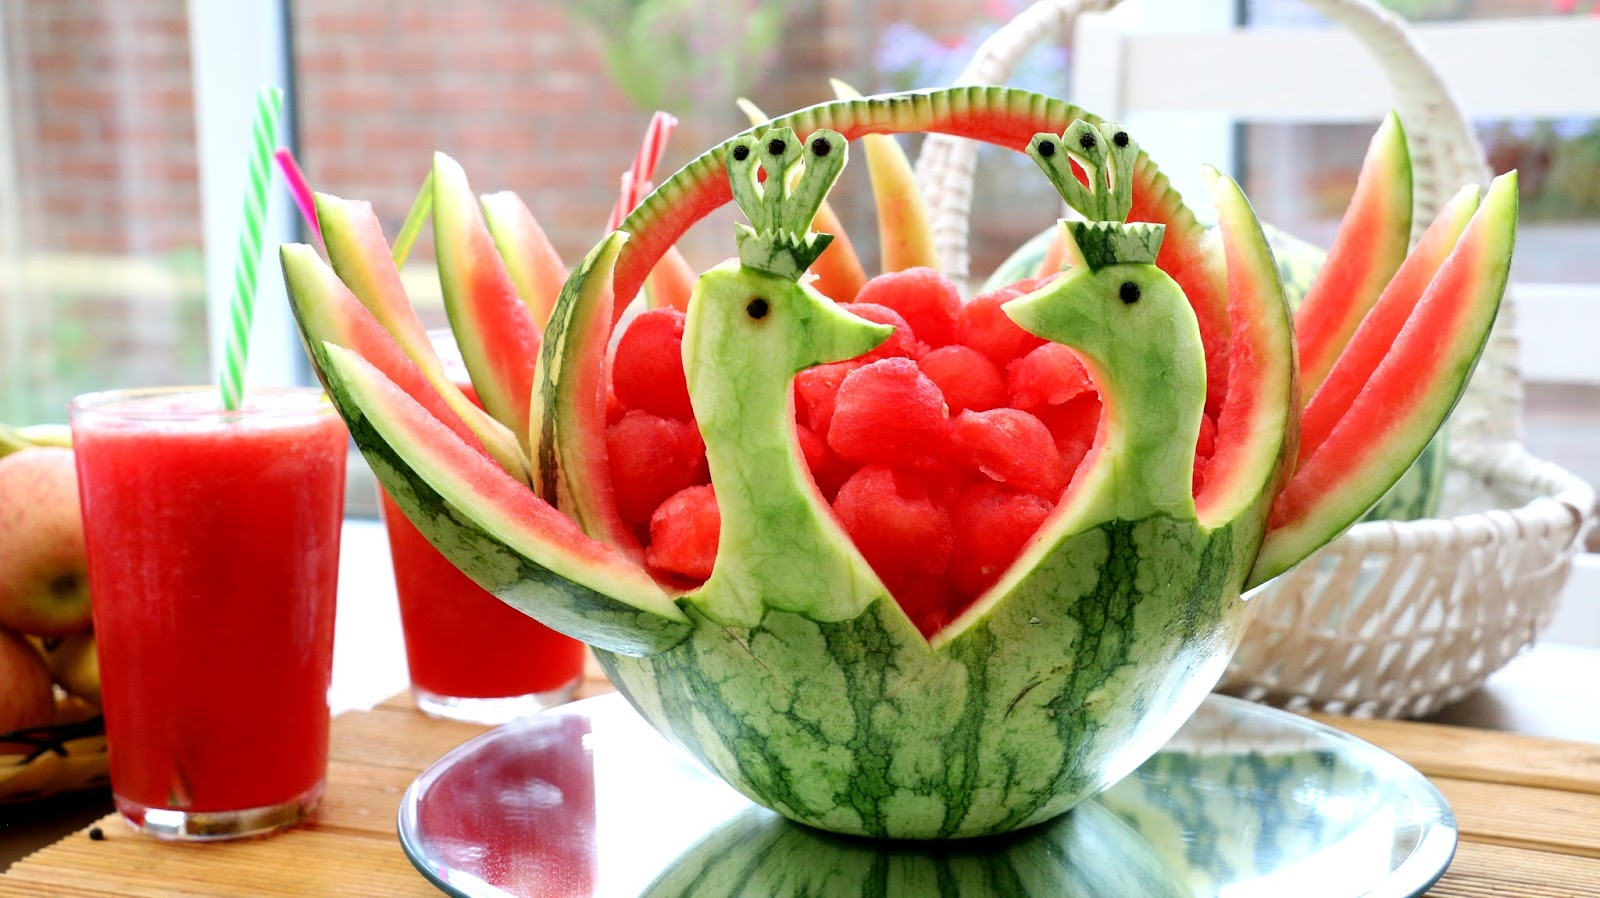 Italypaul art in fruit vegetable carving lessons 【西瓜孔雀的